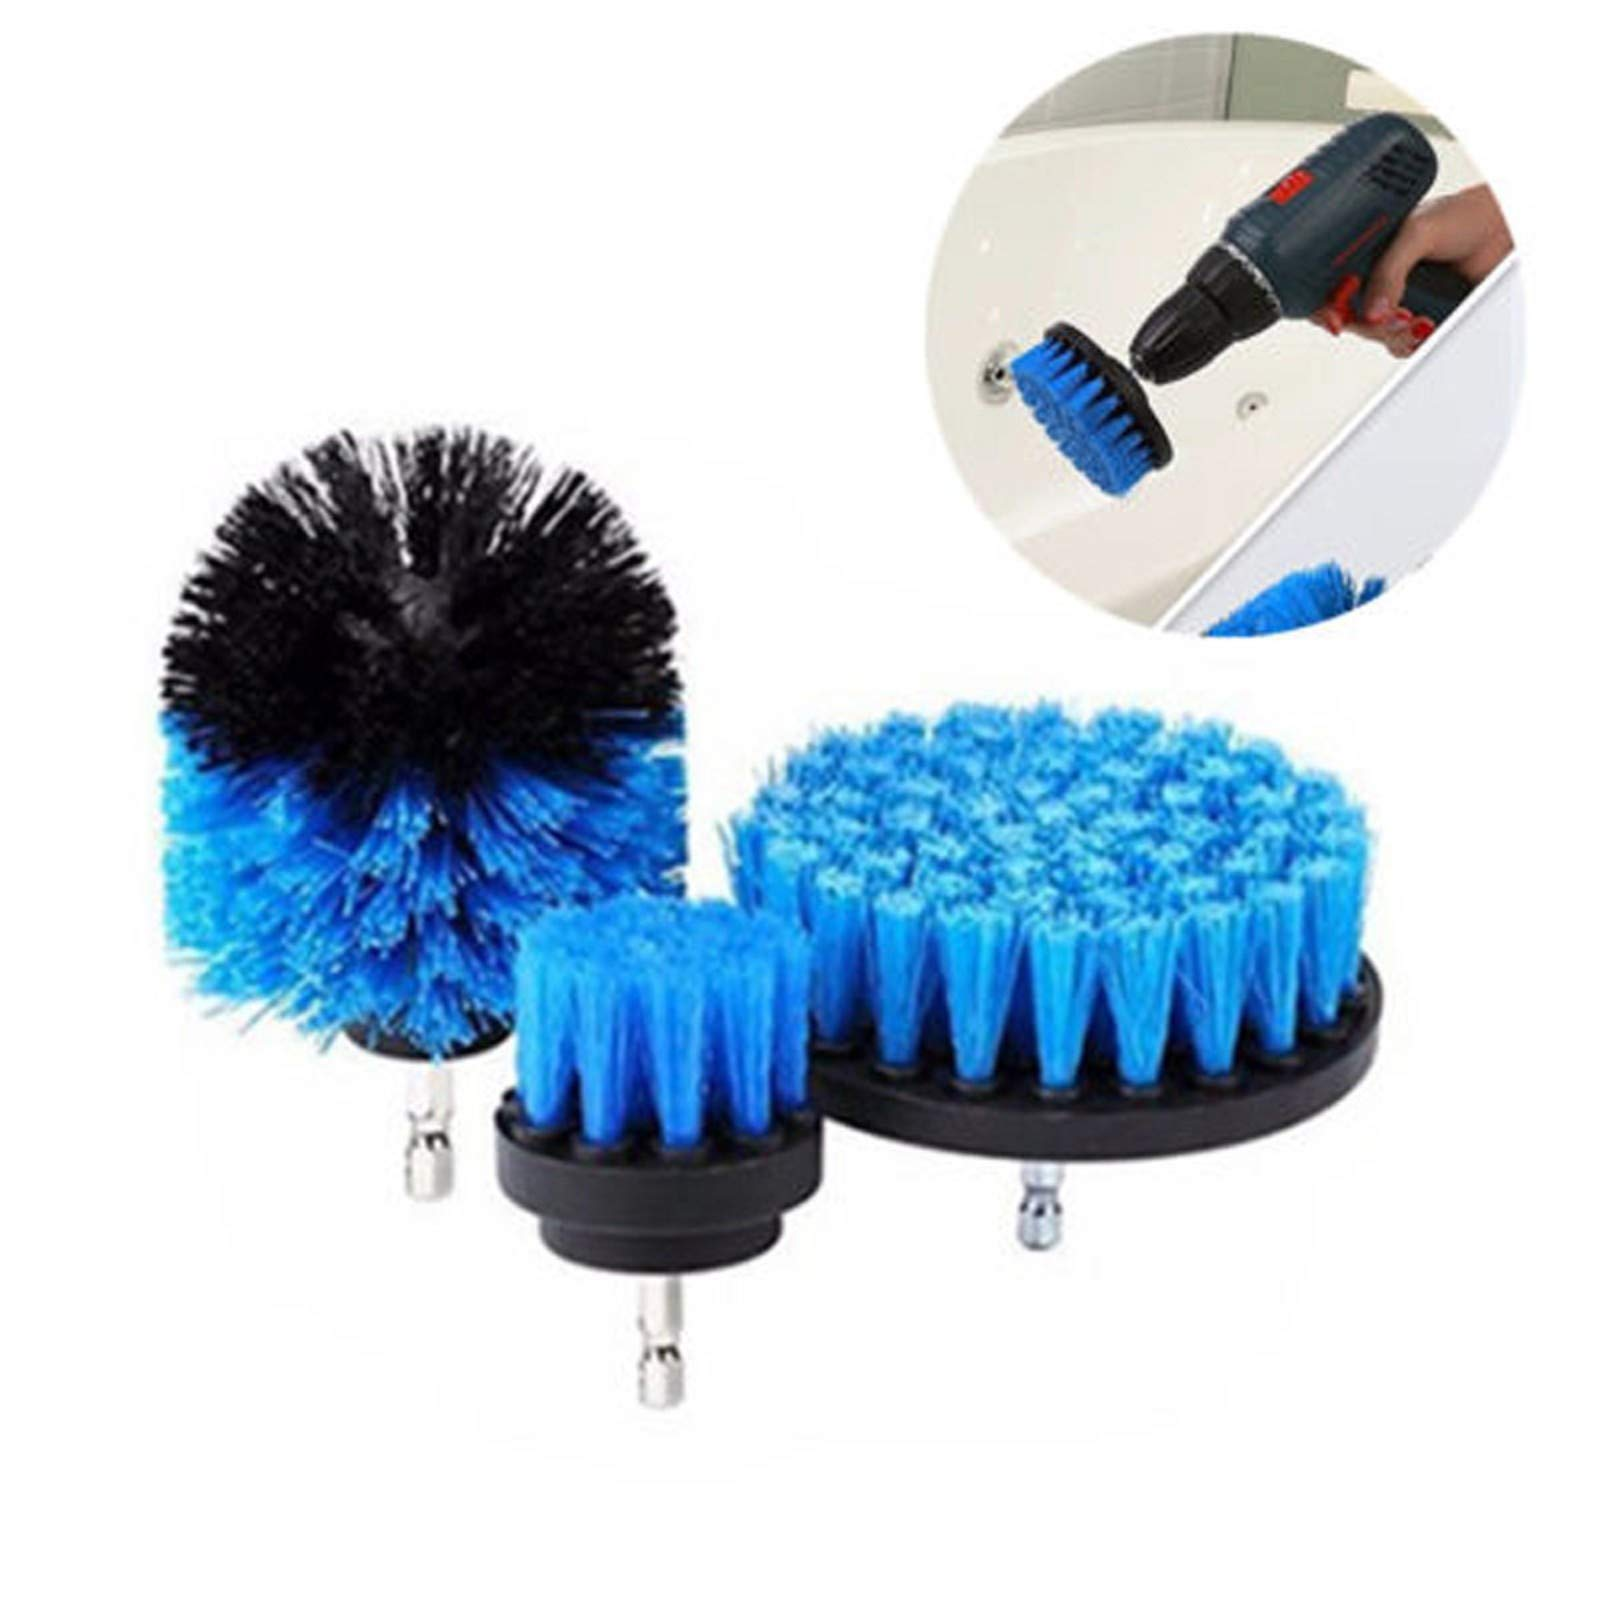 MZS Tec Cleaning Drill Brush, Bathroom Surfaces Tub, Shower, Tile and Grout, Kitchen Power Scrubber Cleaning Kit (Blue)